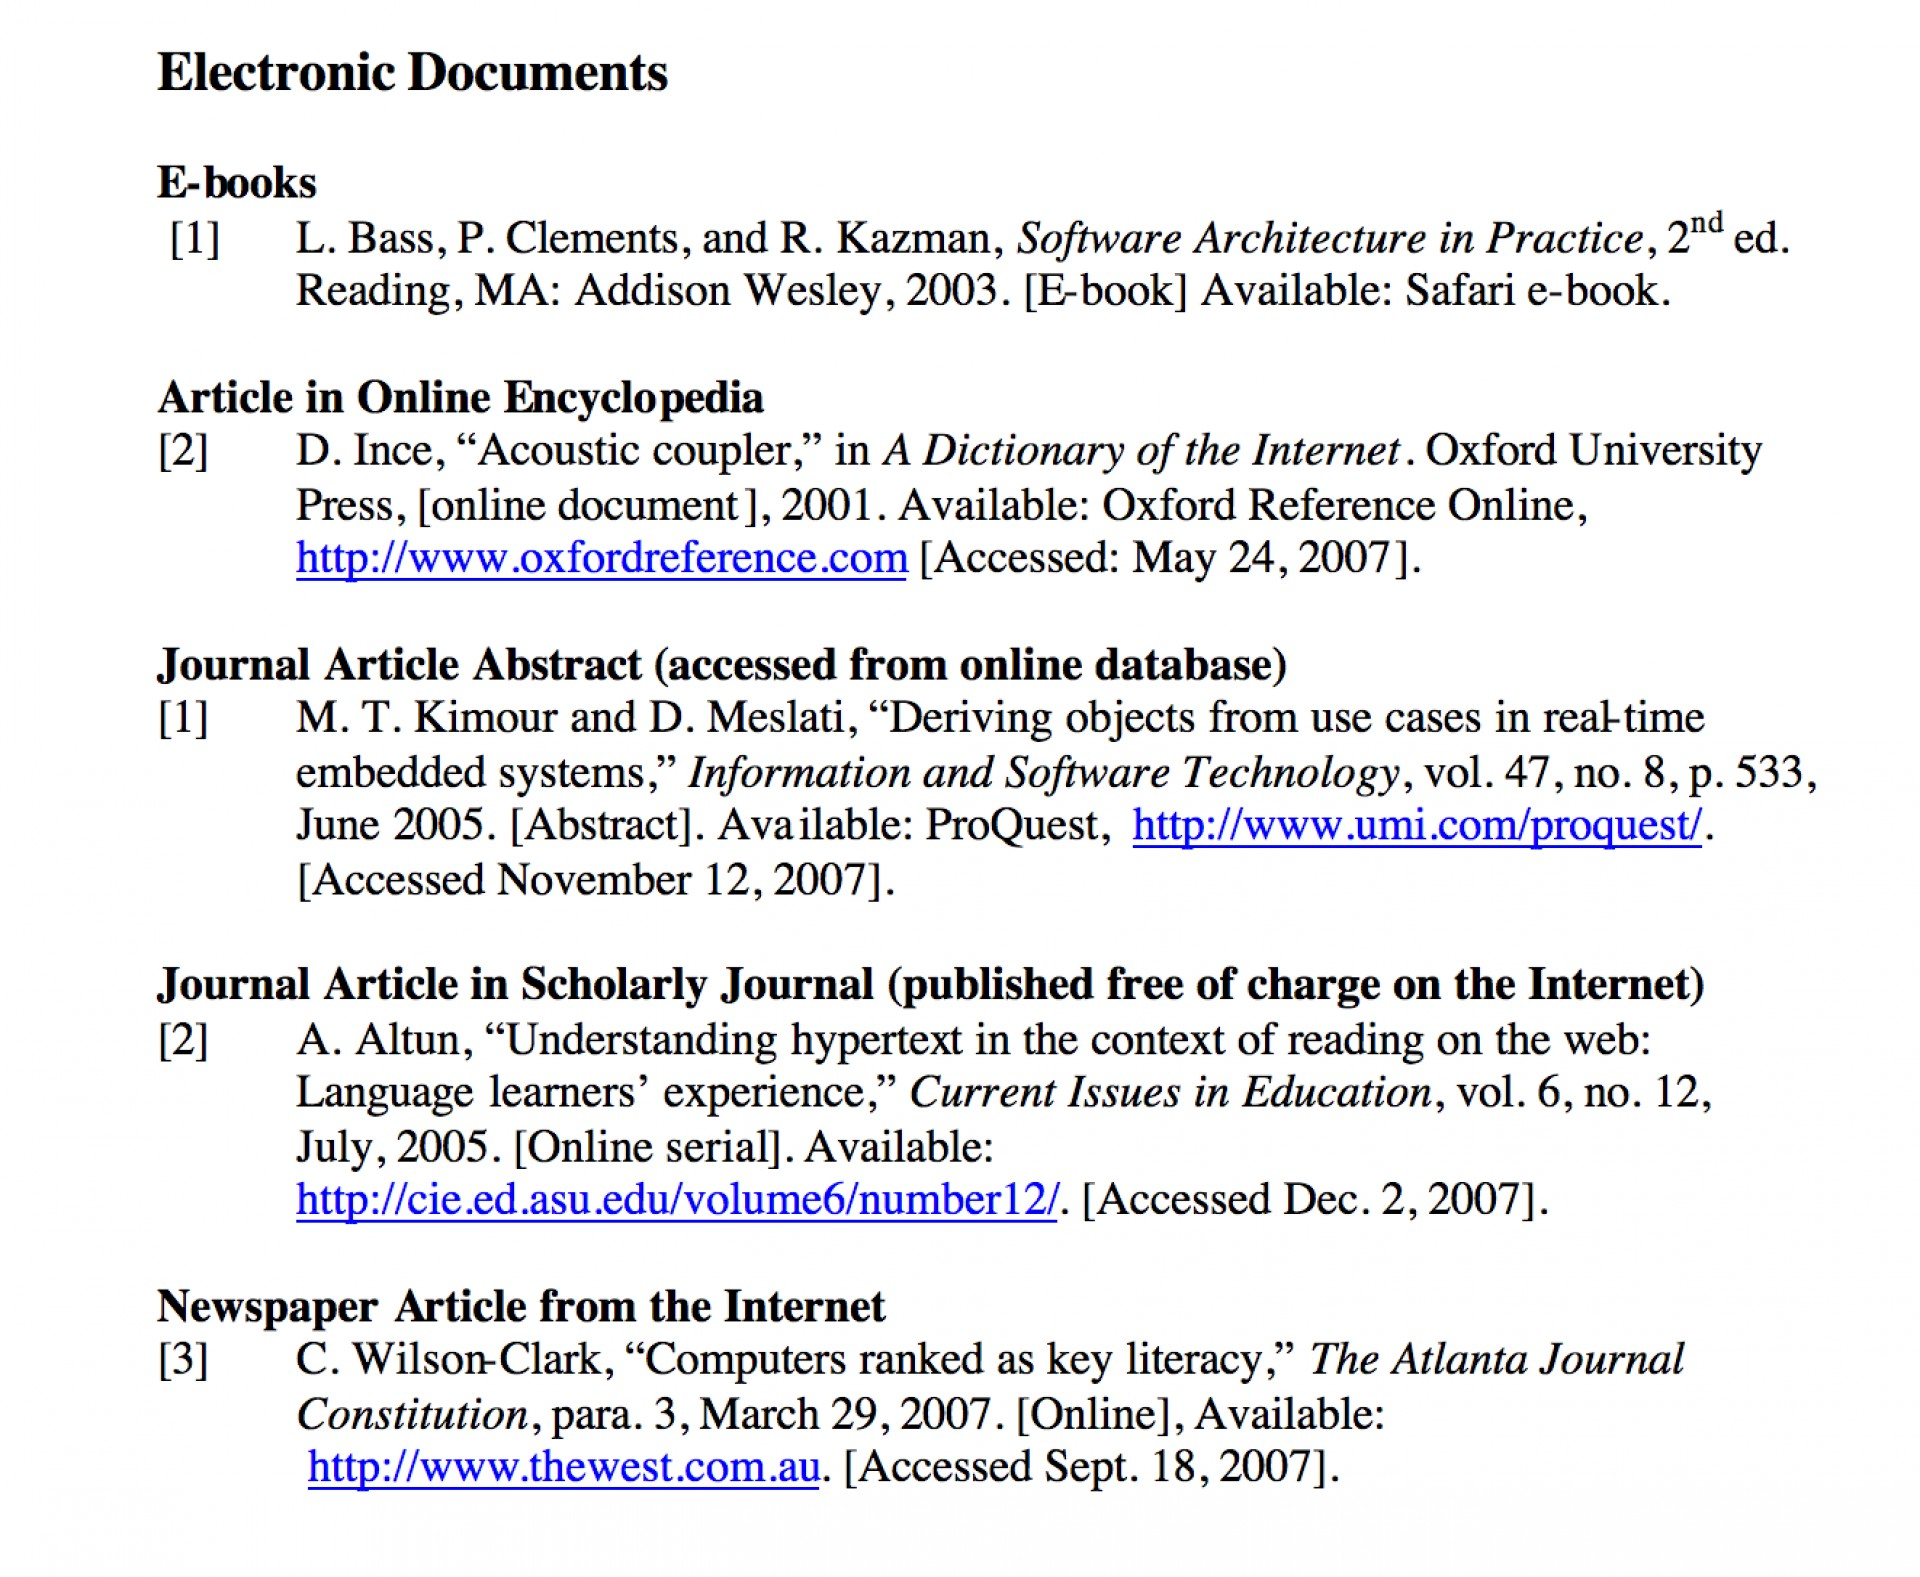 016 Research Paper Free Ieee Papers Computer Science 1 1528899707 Unusual On In For 1920